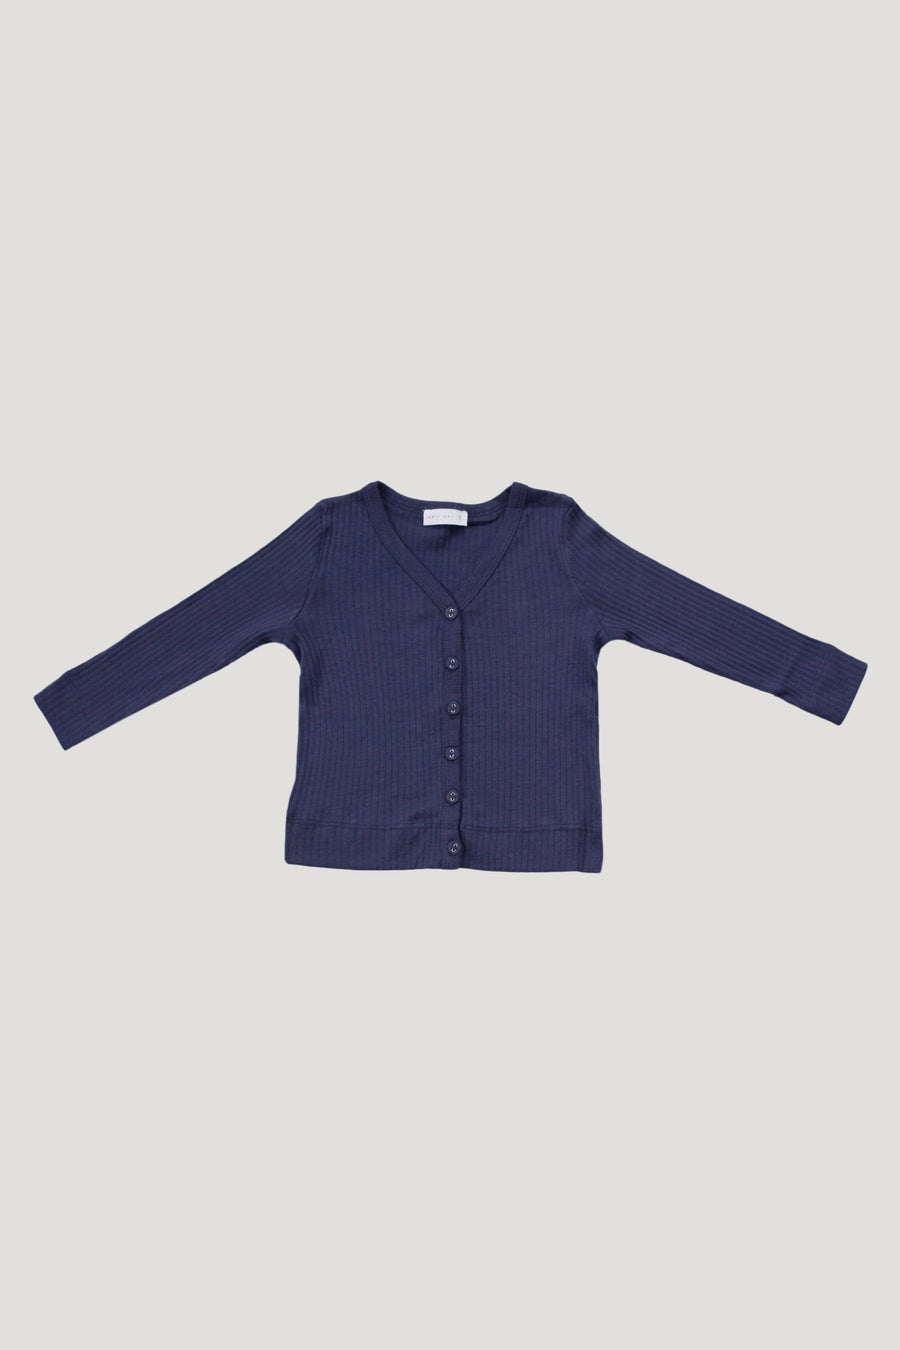 Jamie Kay - Cotton Modal Cardigan - Navy